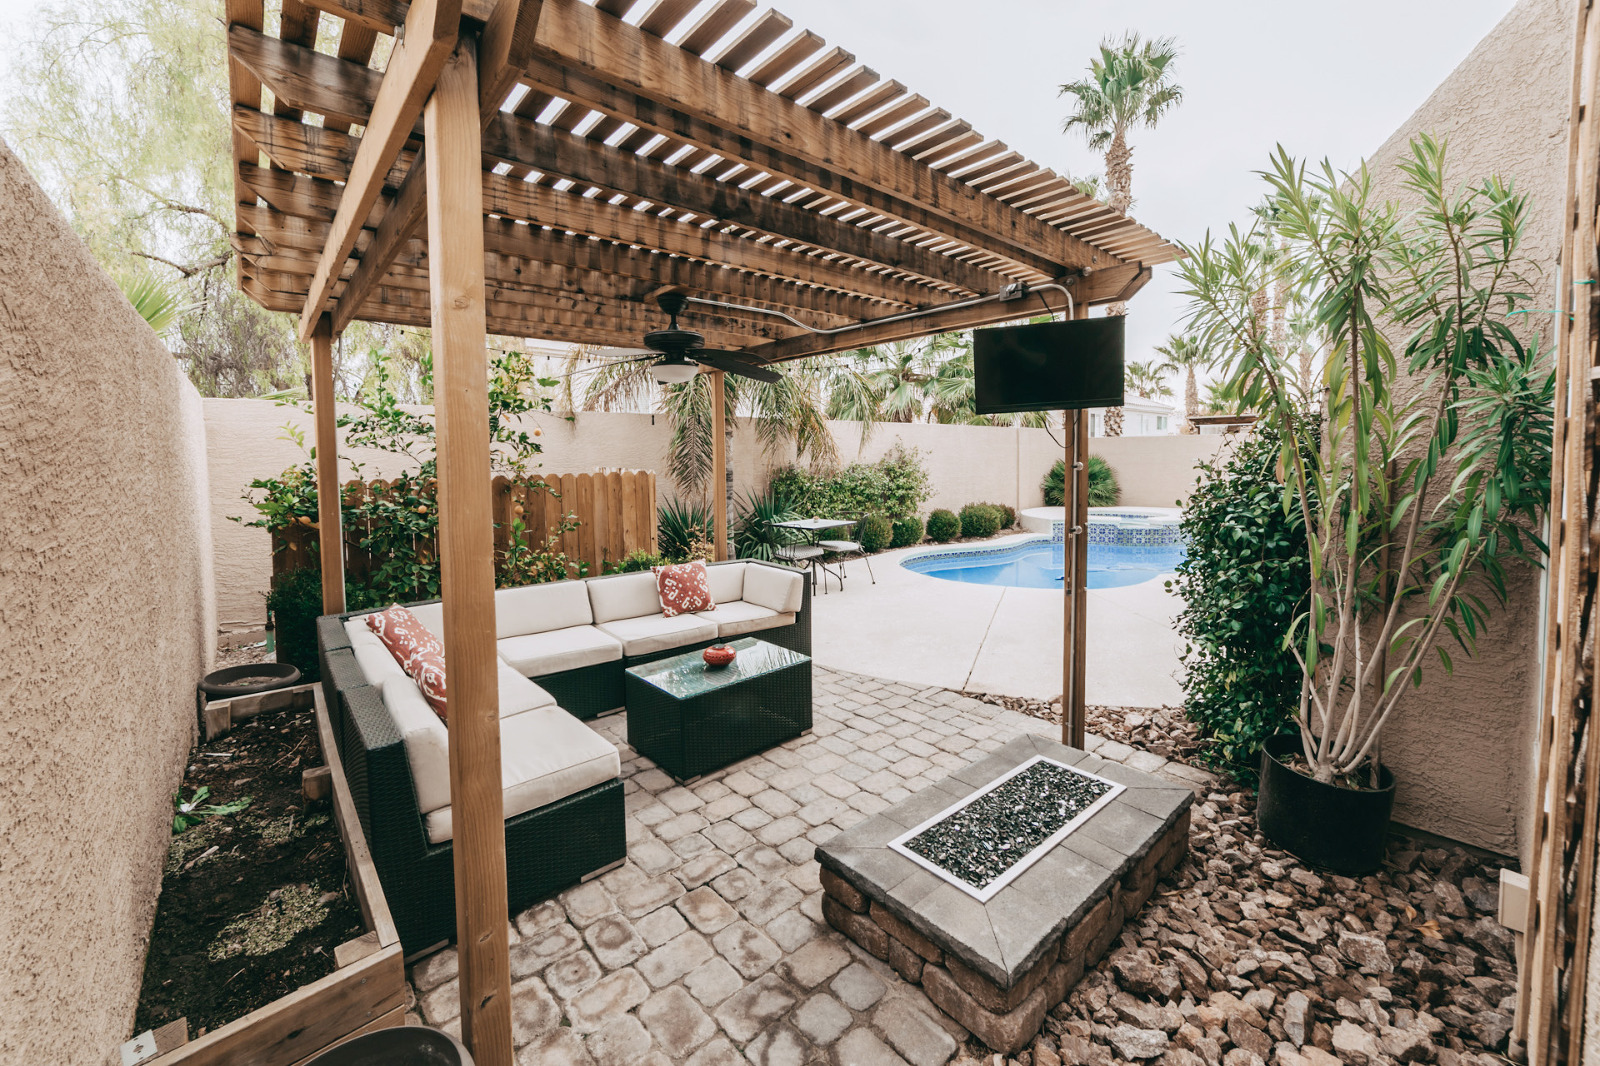 Las Vegas Real Estate pictures. Backyard fire pit and patio furniture.